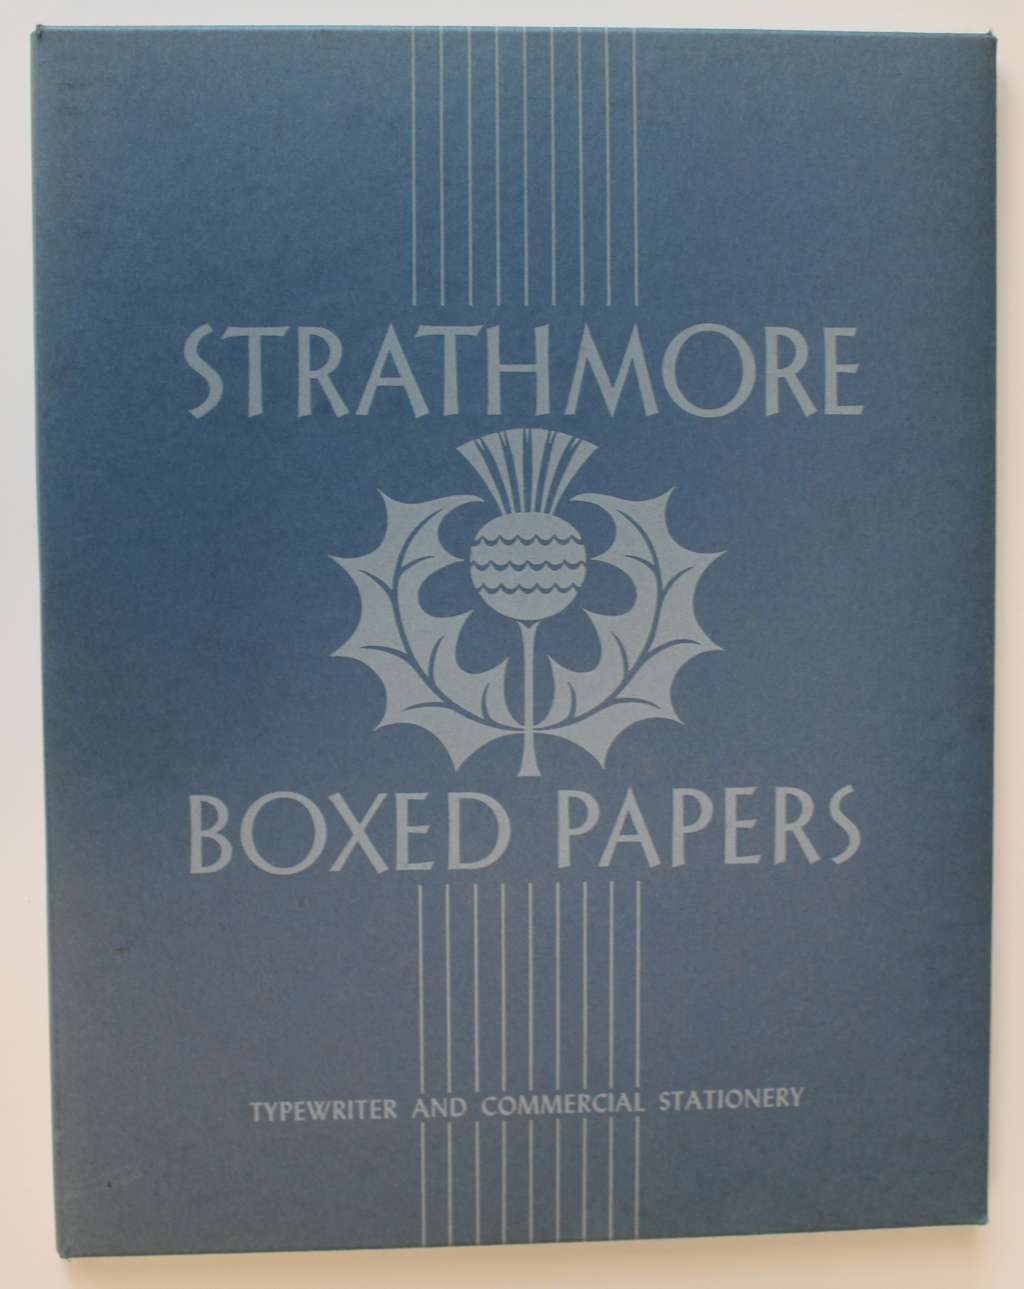 Strathmore Boxed Papers (c.1945). Design by Cornelia Hoff.